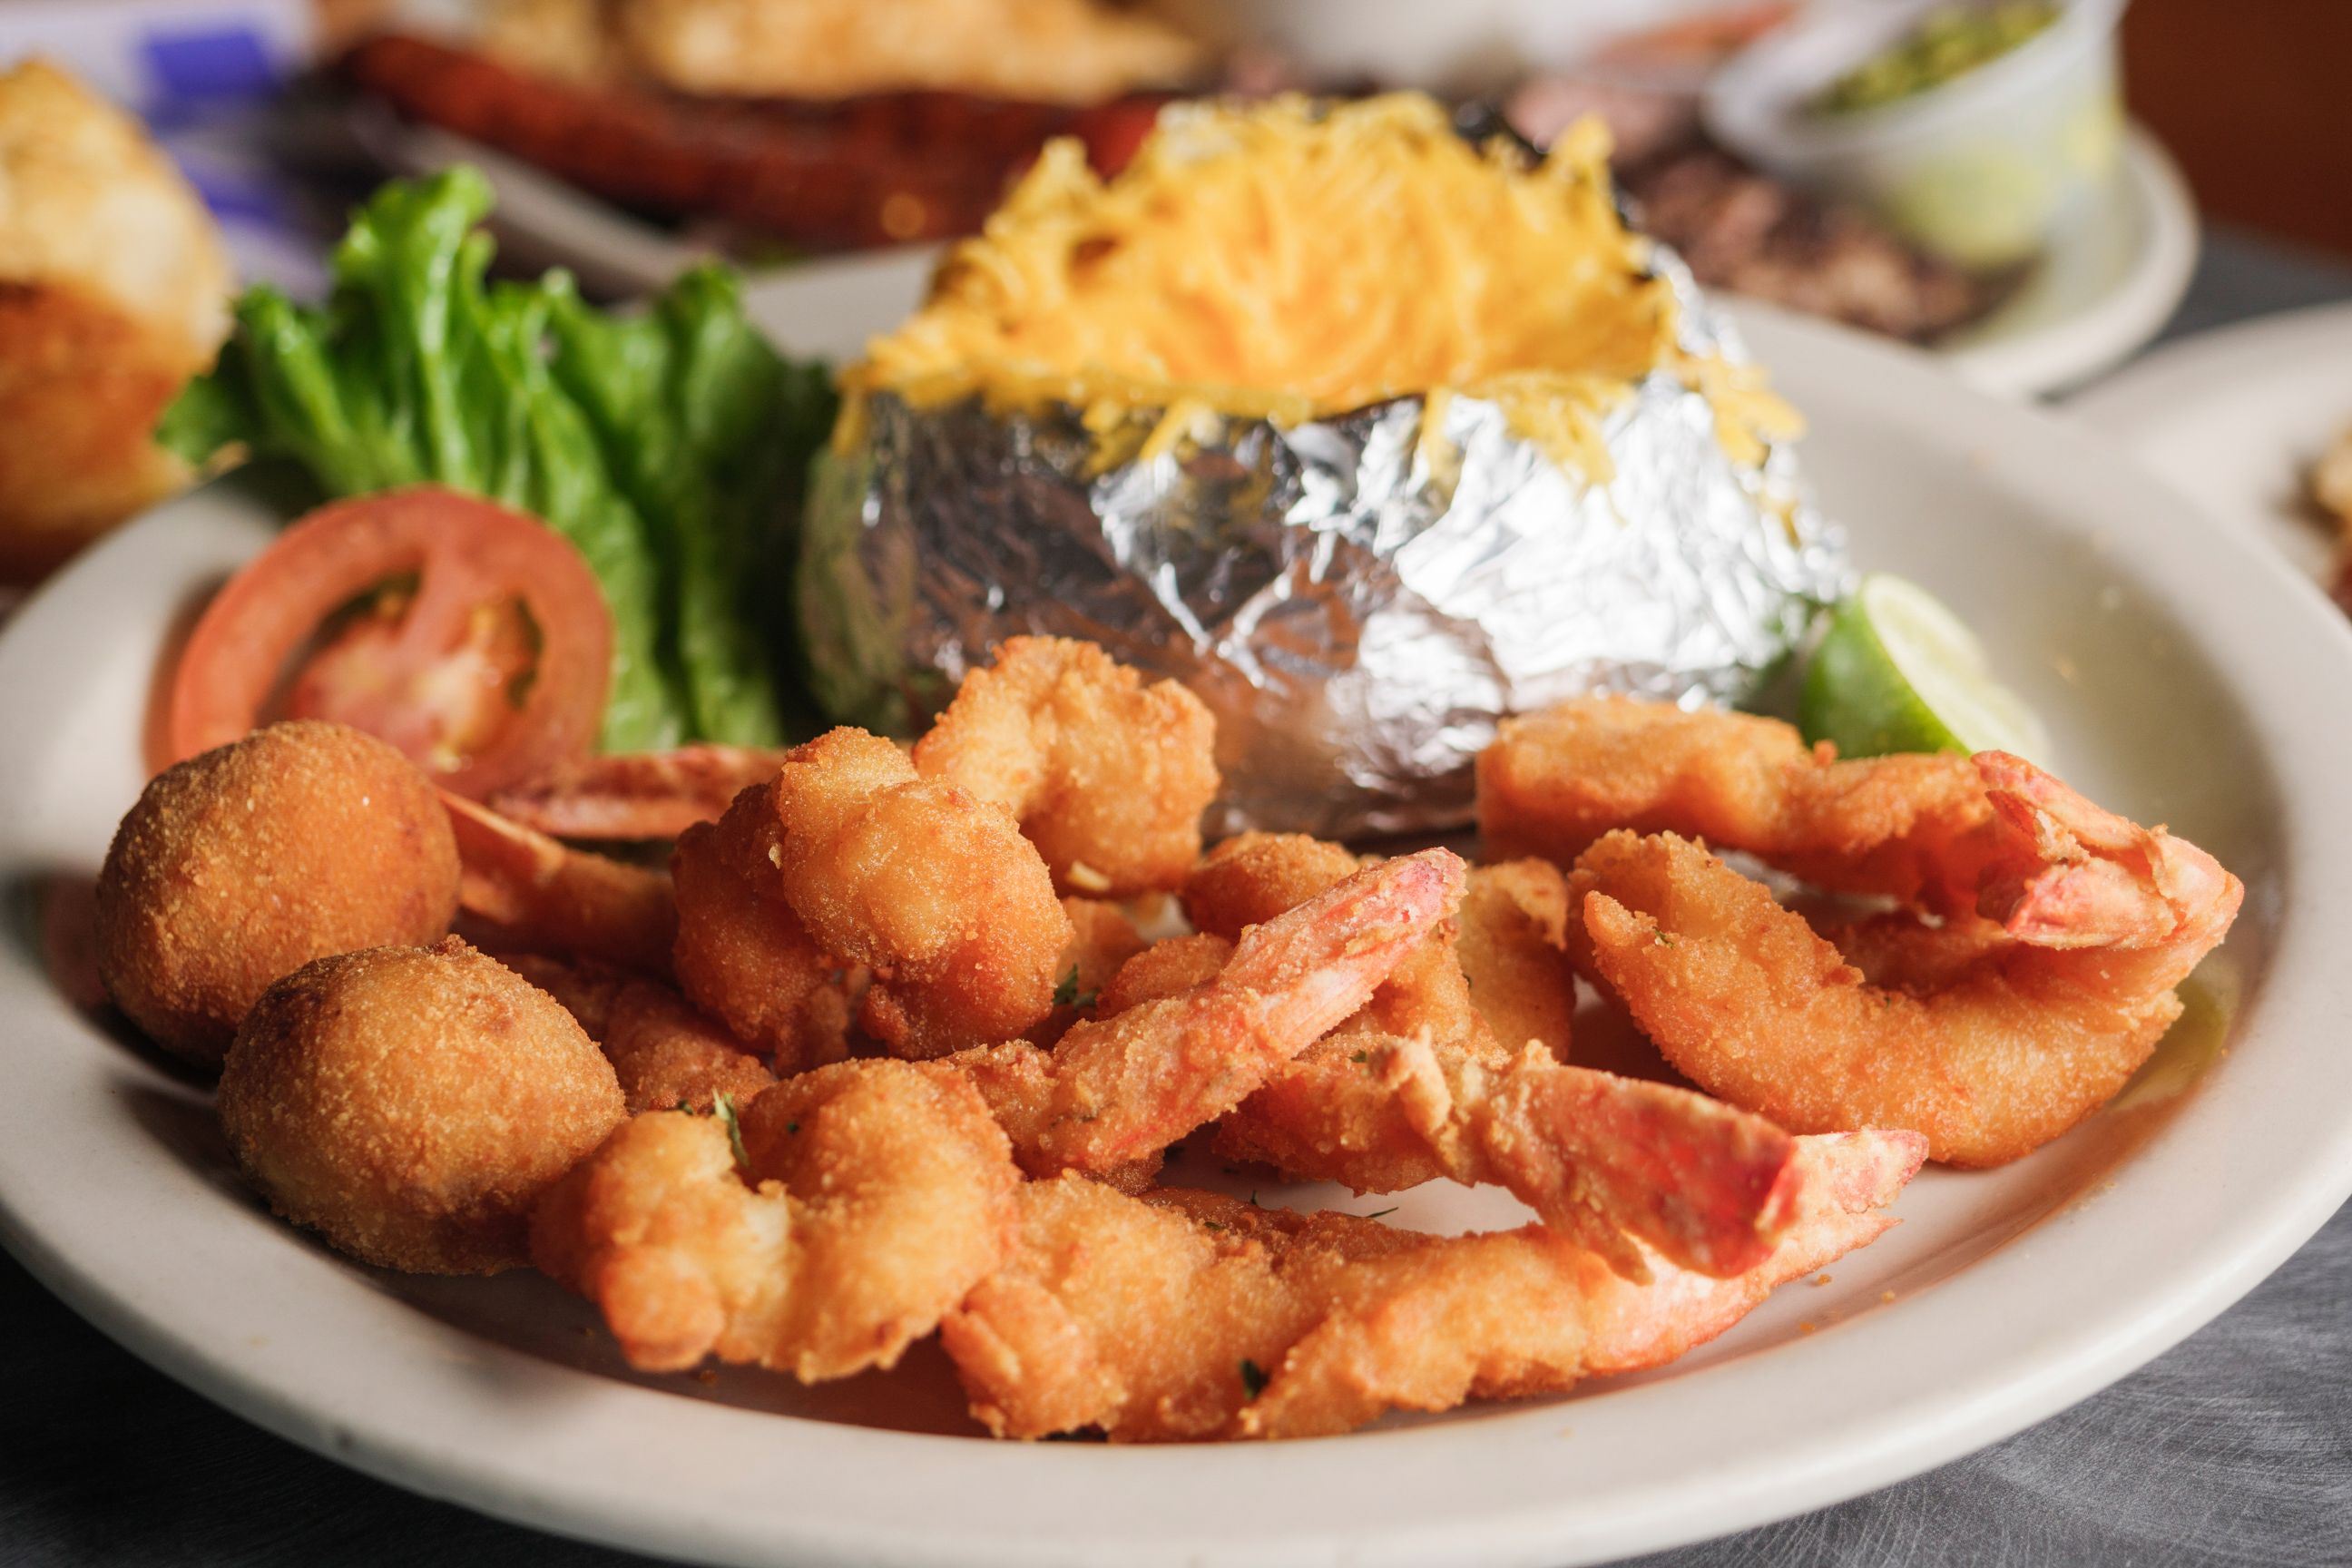 Popcorn shrimp with hush puppies, cheesy baked potato, and slice of tomato and lettuce